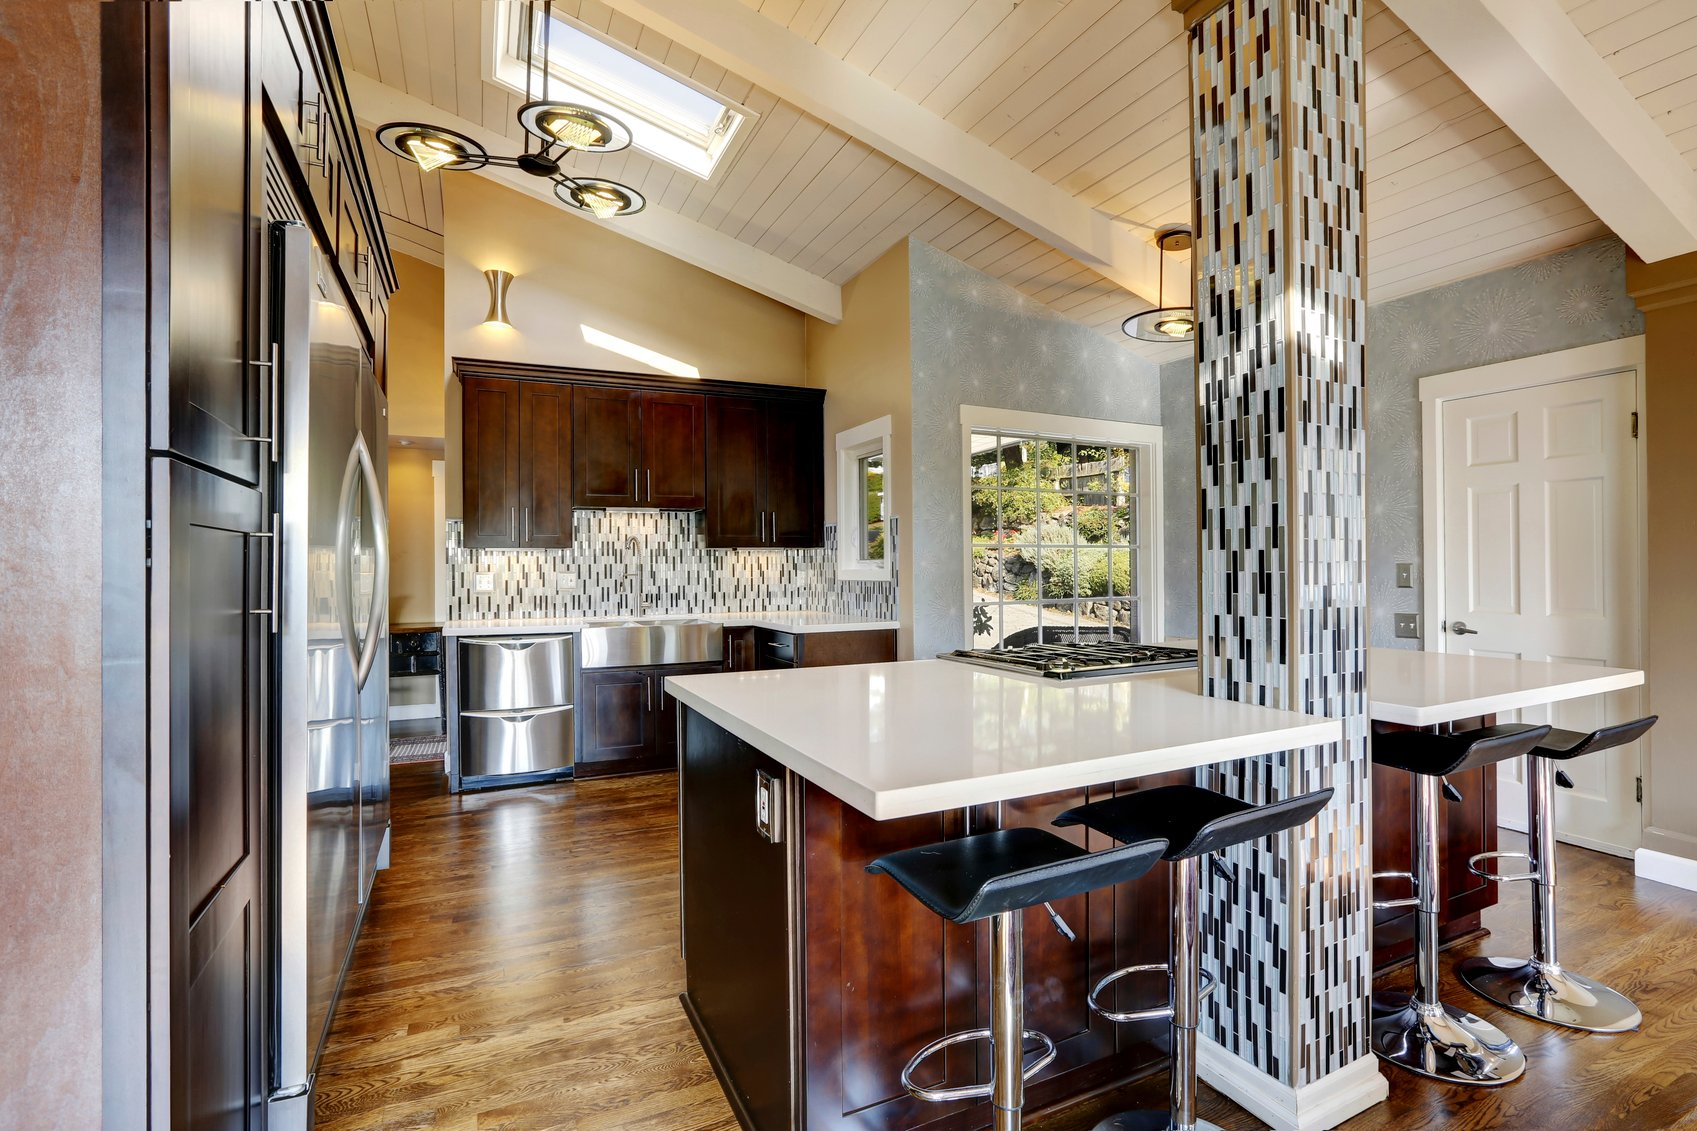 The tile- decorated pillar catches anyone's attention in this kitchen.